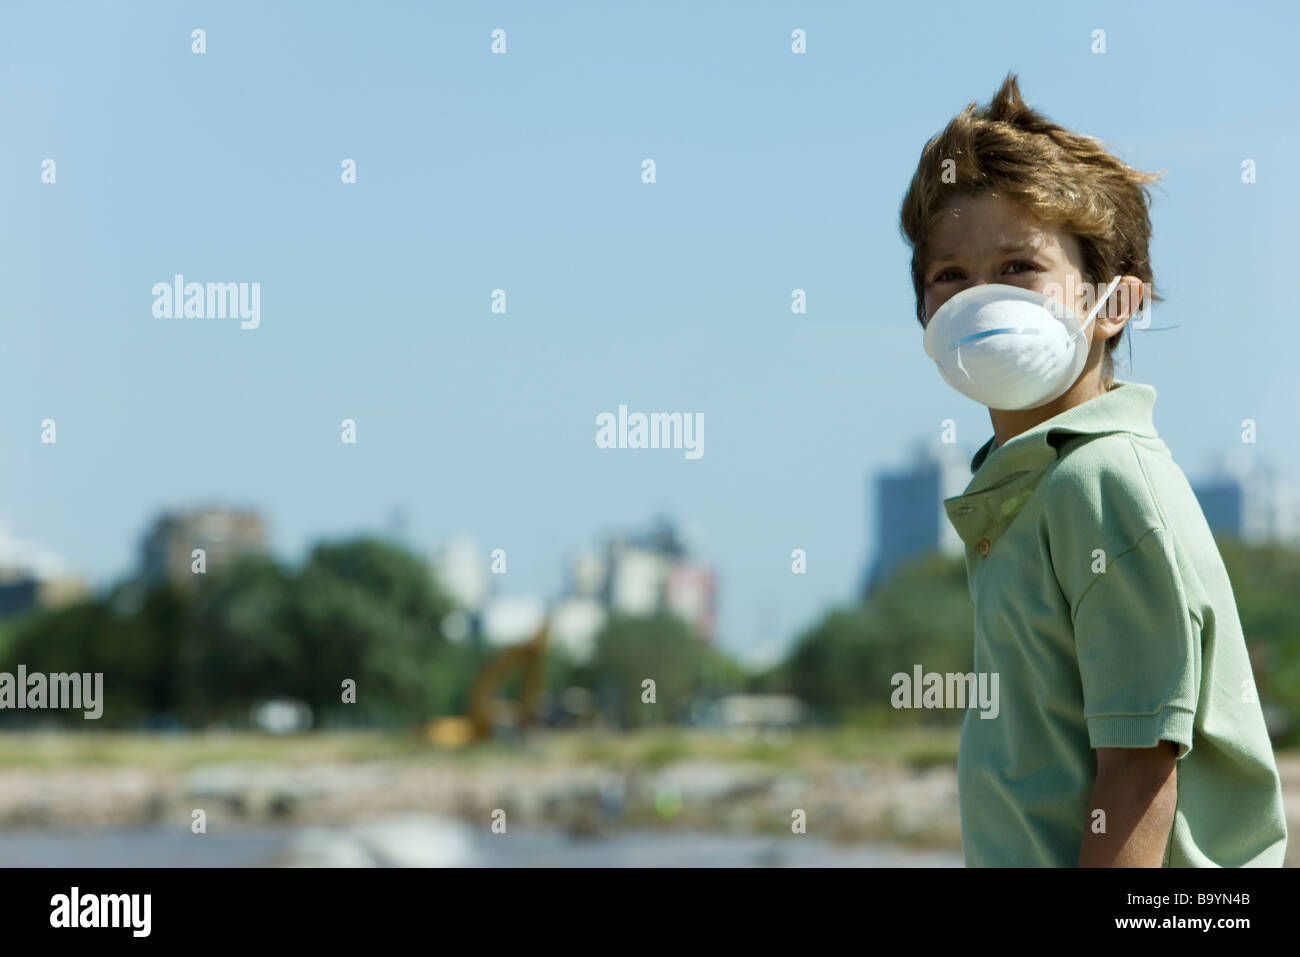 Boy standing outdoors, wearing pollution mask - Stock Image